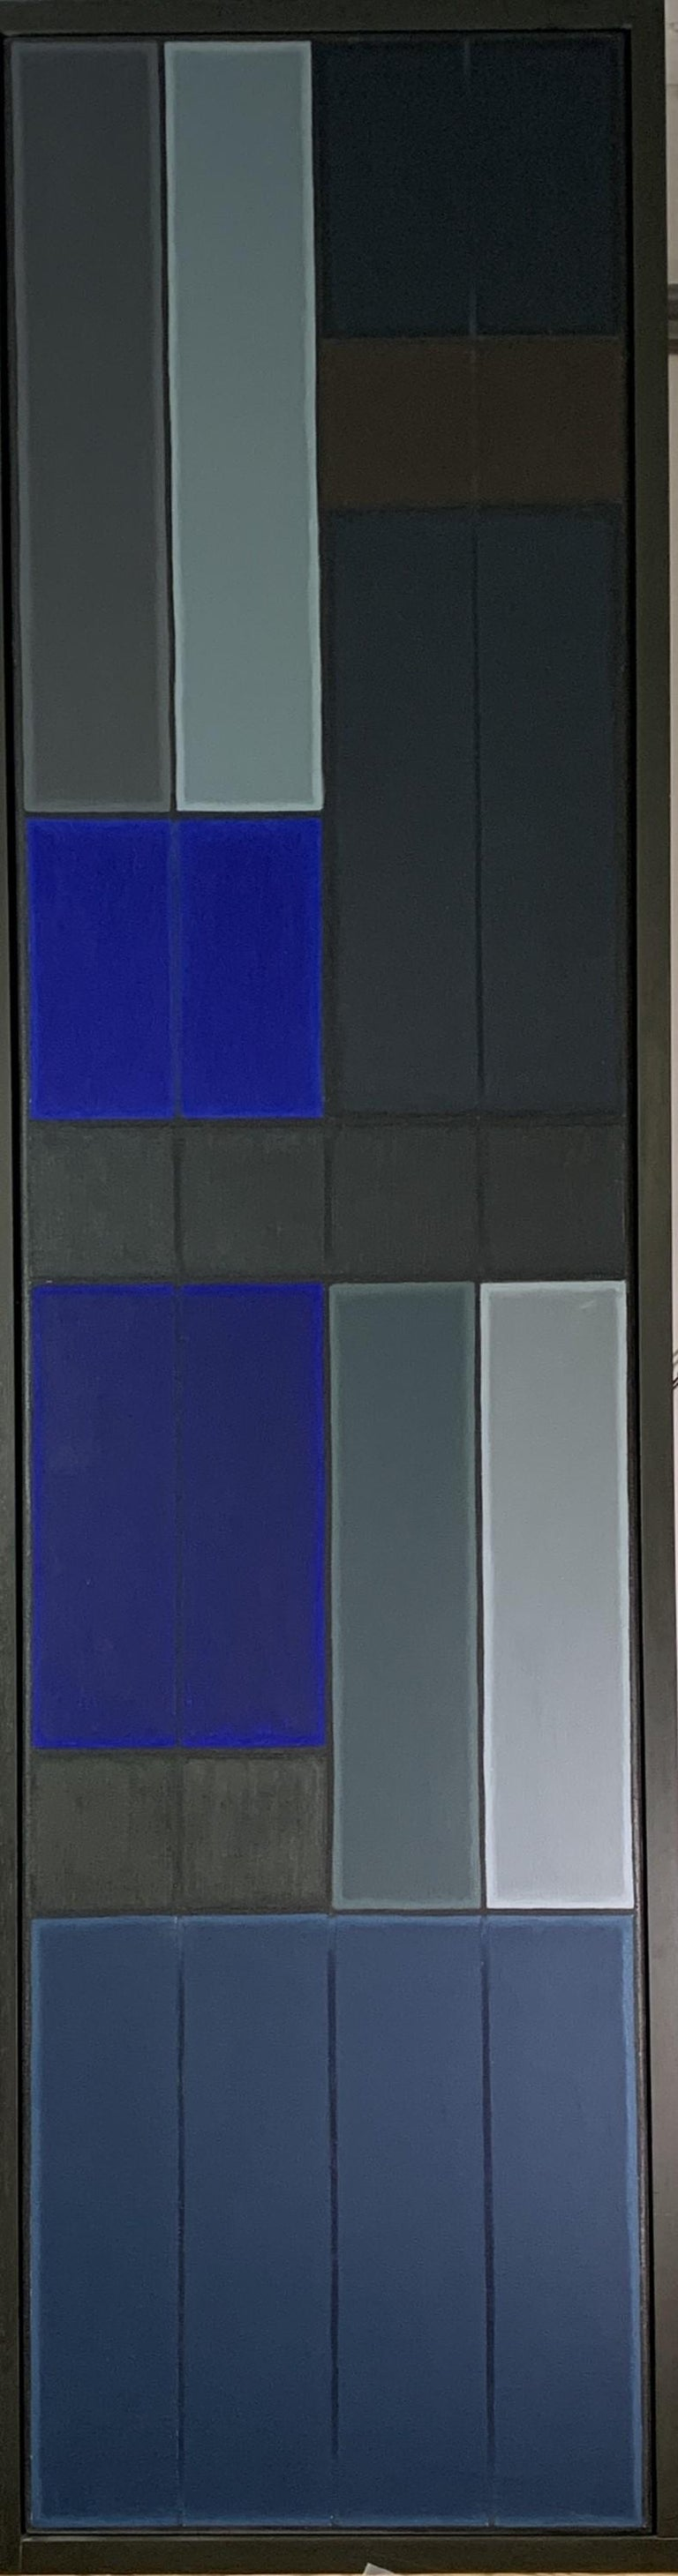 John Hopwood Abstract Painting - Untitled Blue Abstract Number 1.  Geometric Oil painting